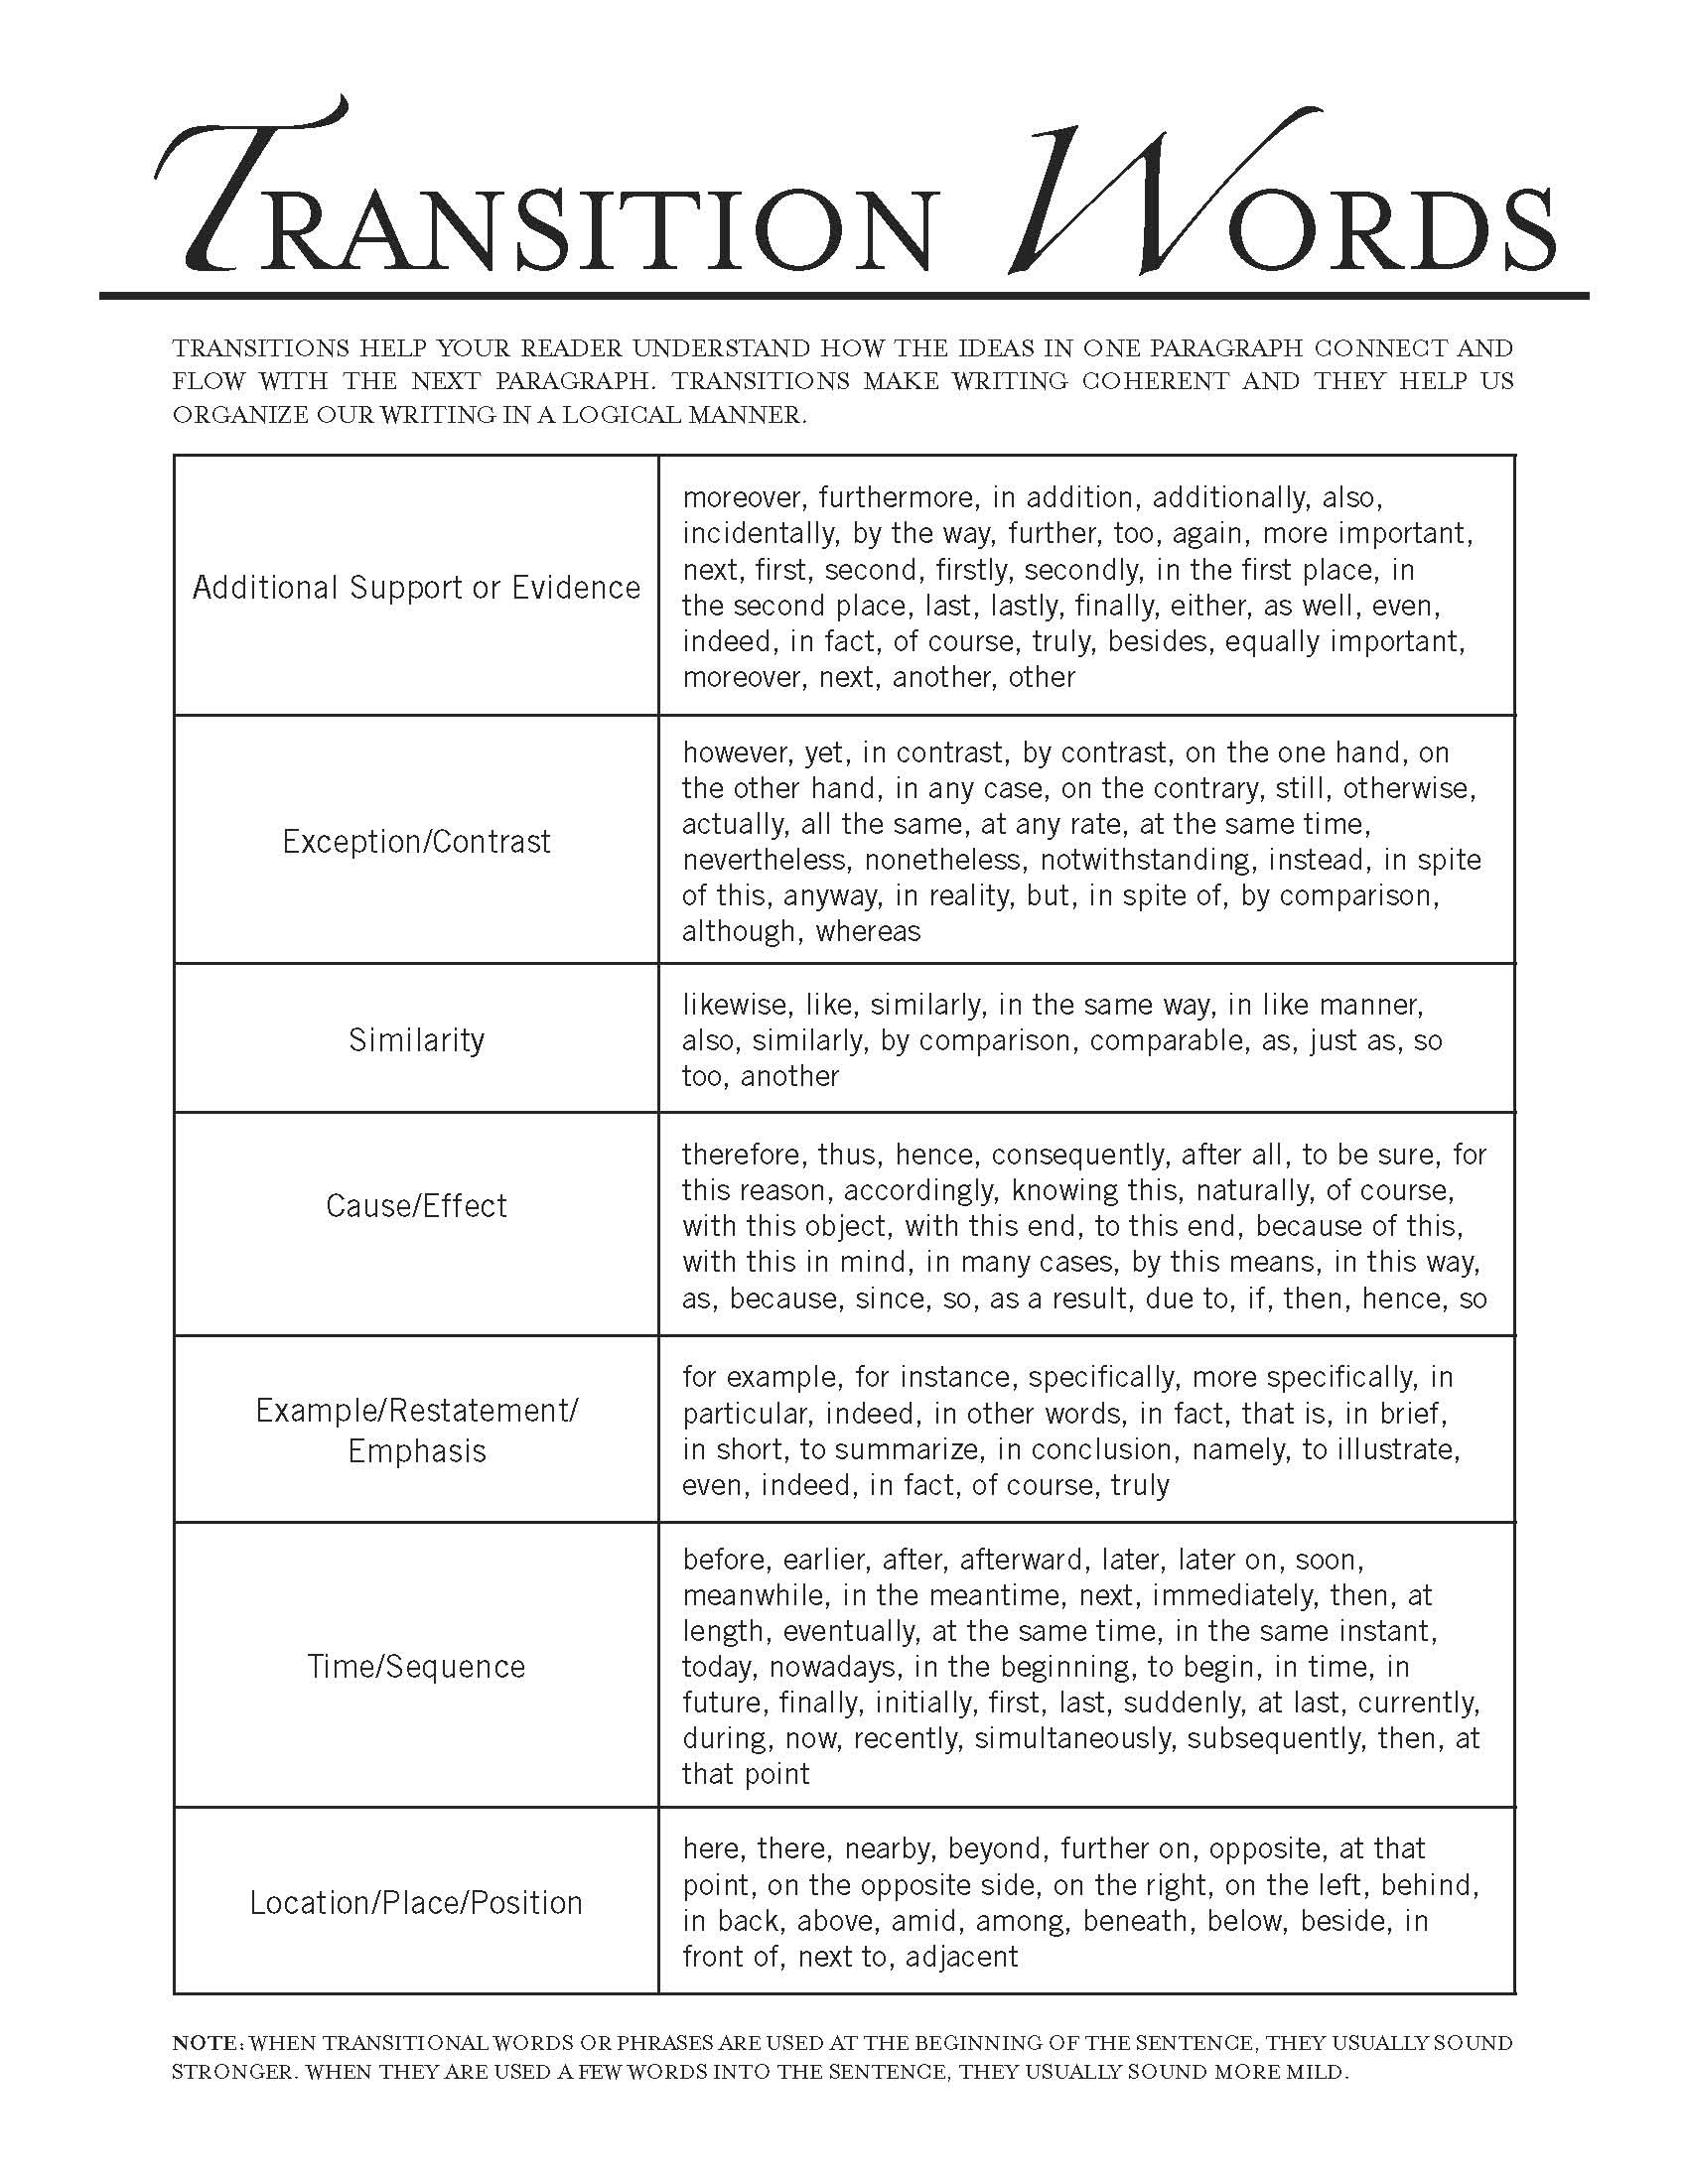 cause and effect examples essay examples of a personal  transition phrases for essays transition words amp phrases examples of transition words used in essays essaygood cause and effect relationship